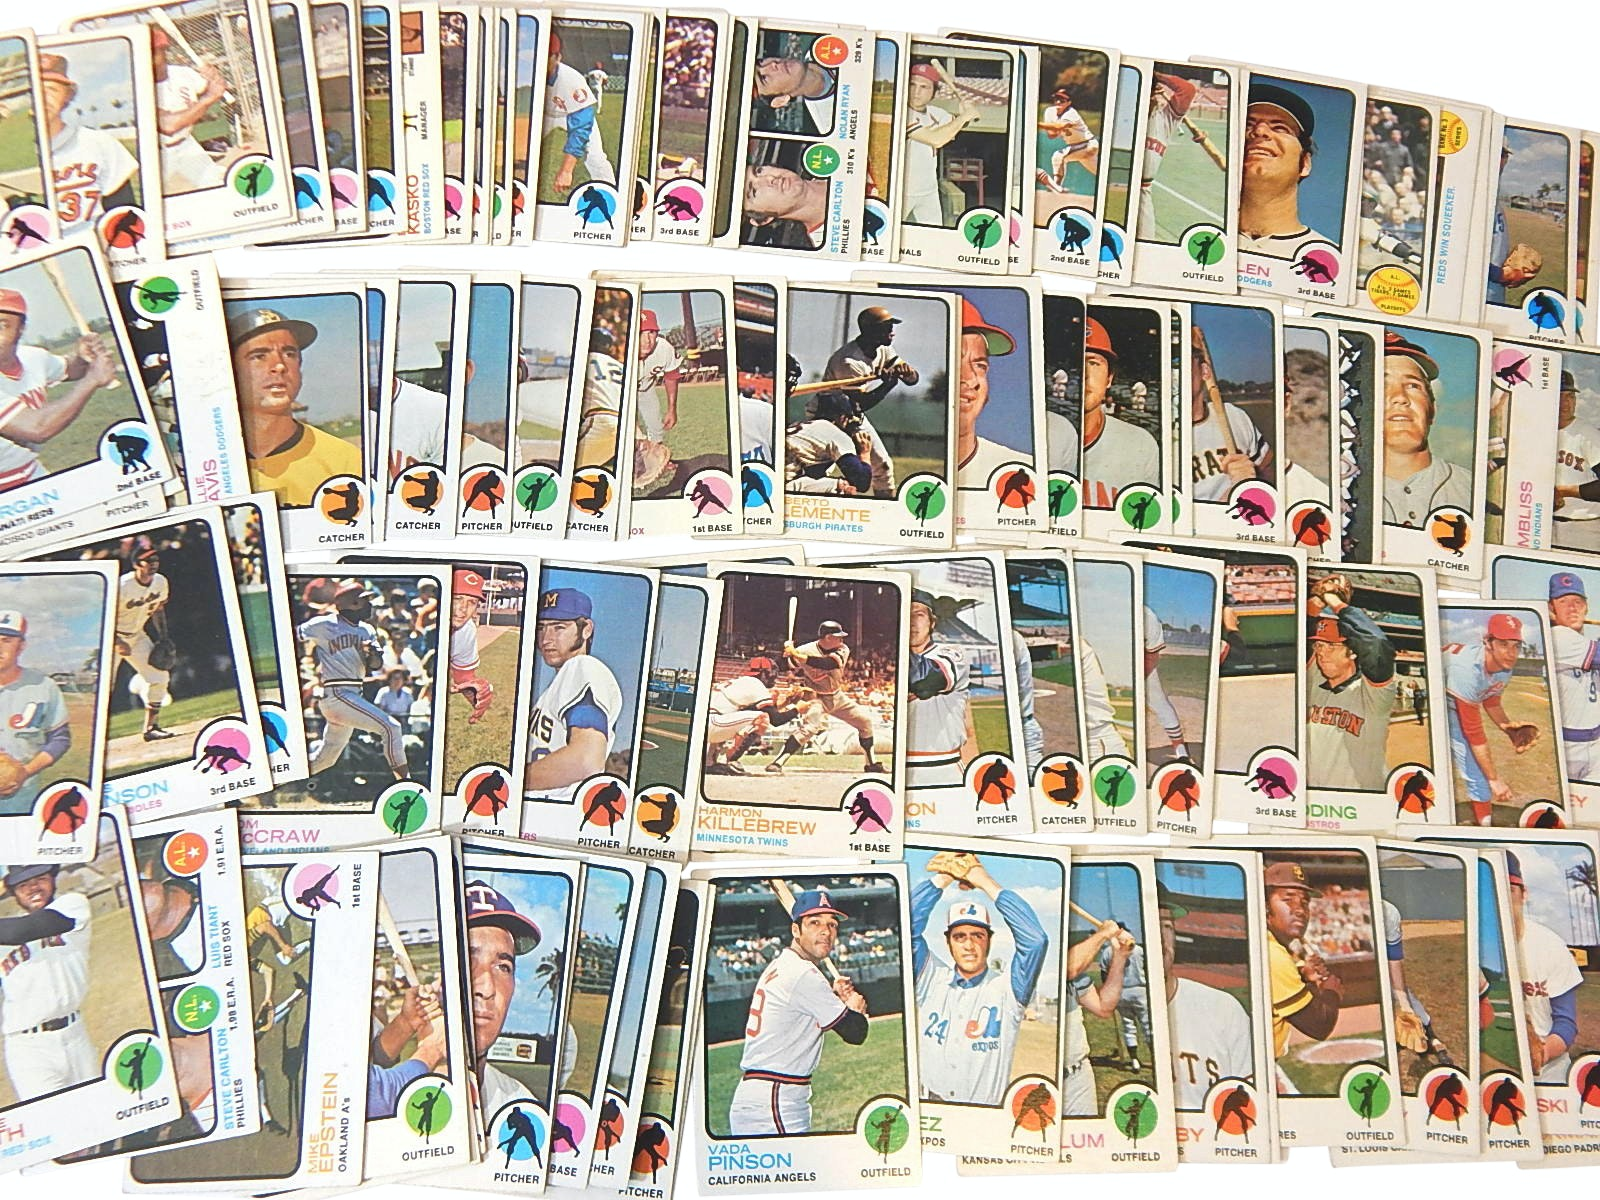 1973 Topps Baseball Cards with Clemente, Morgan, Killebrew, Pinson